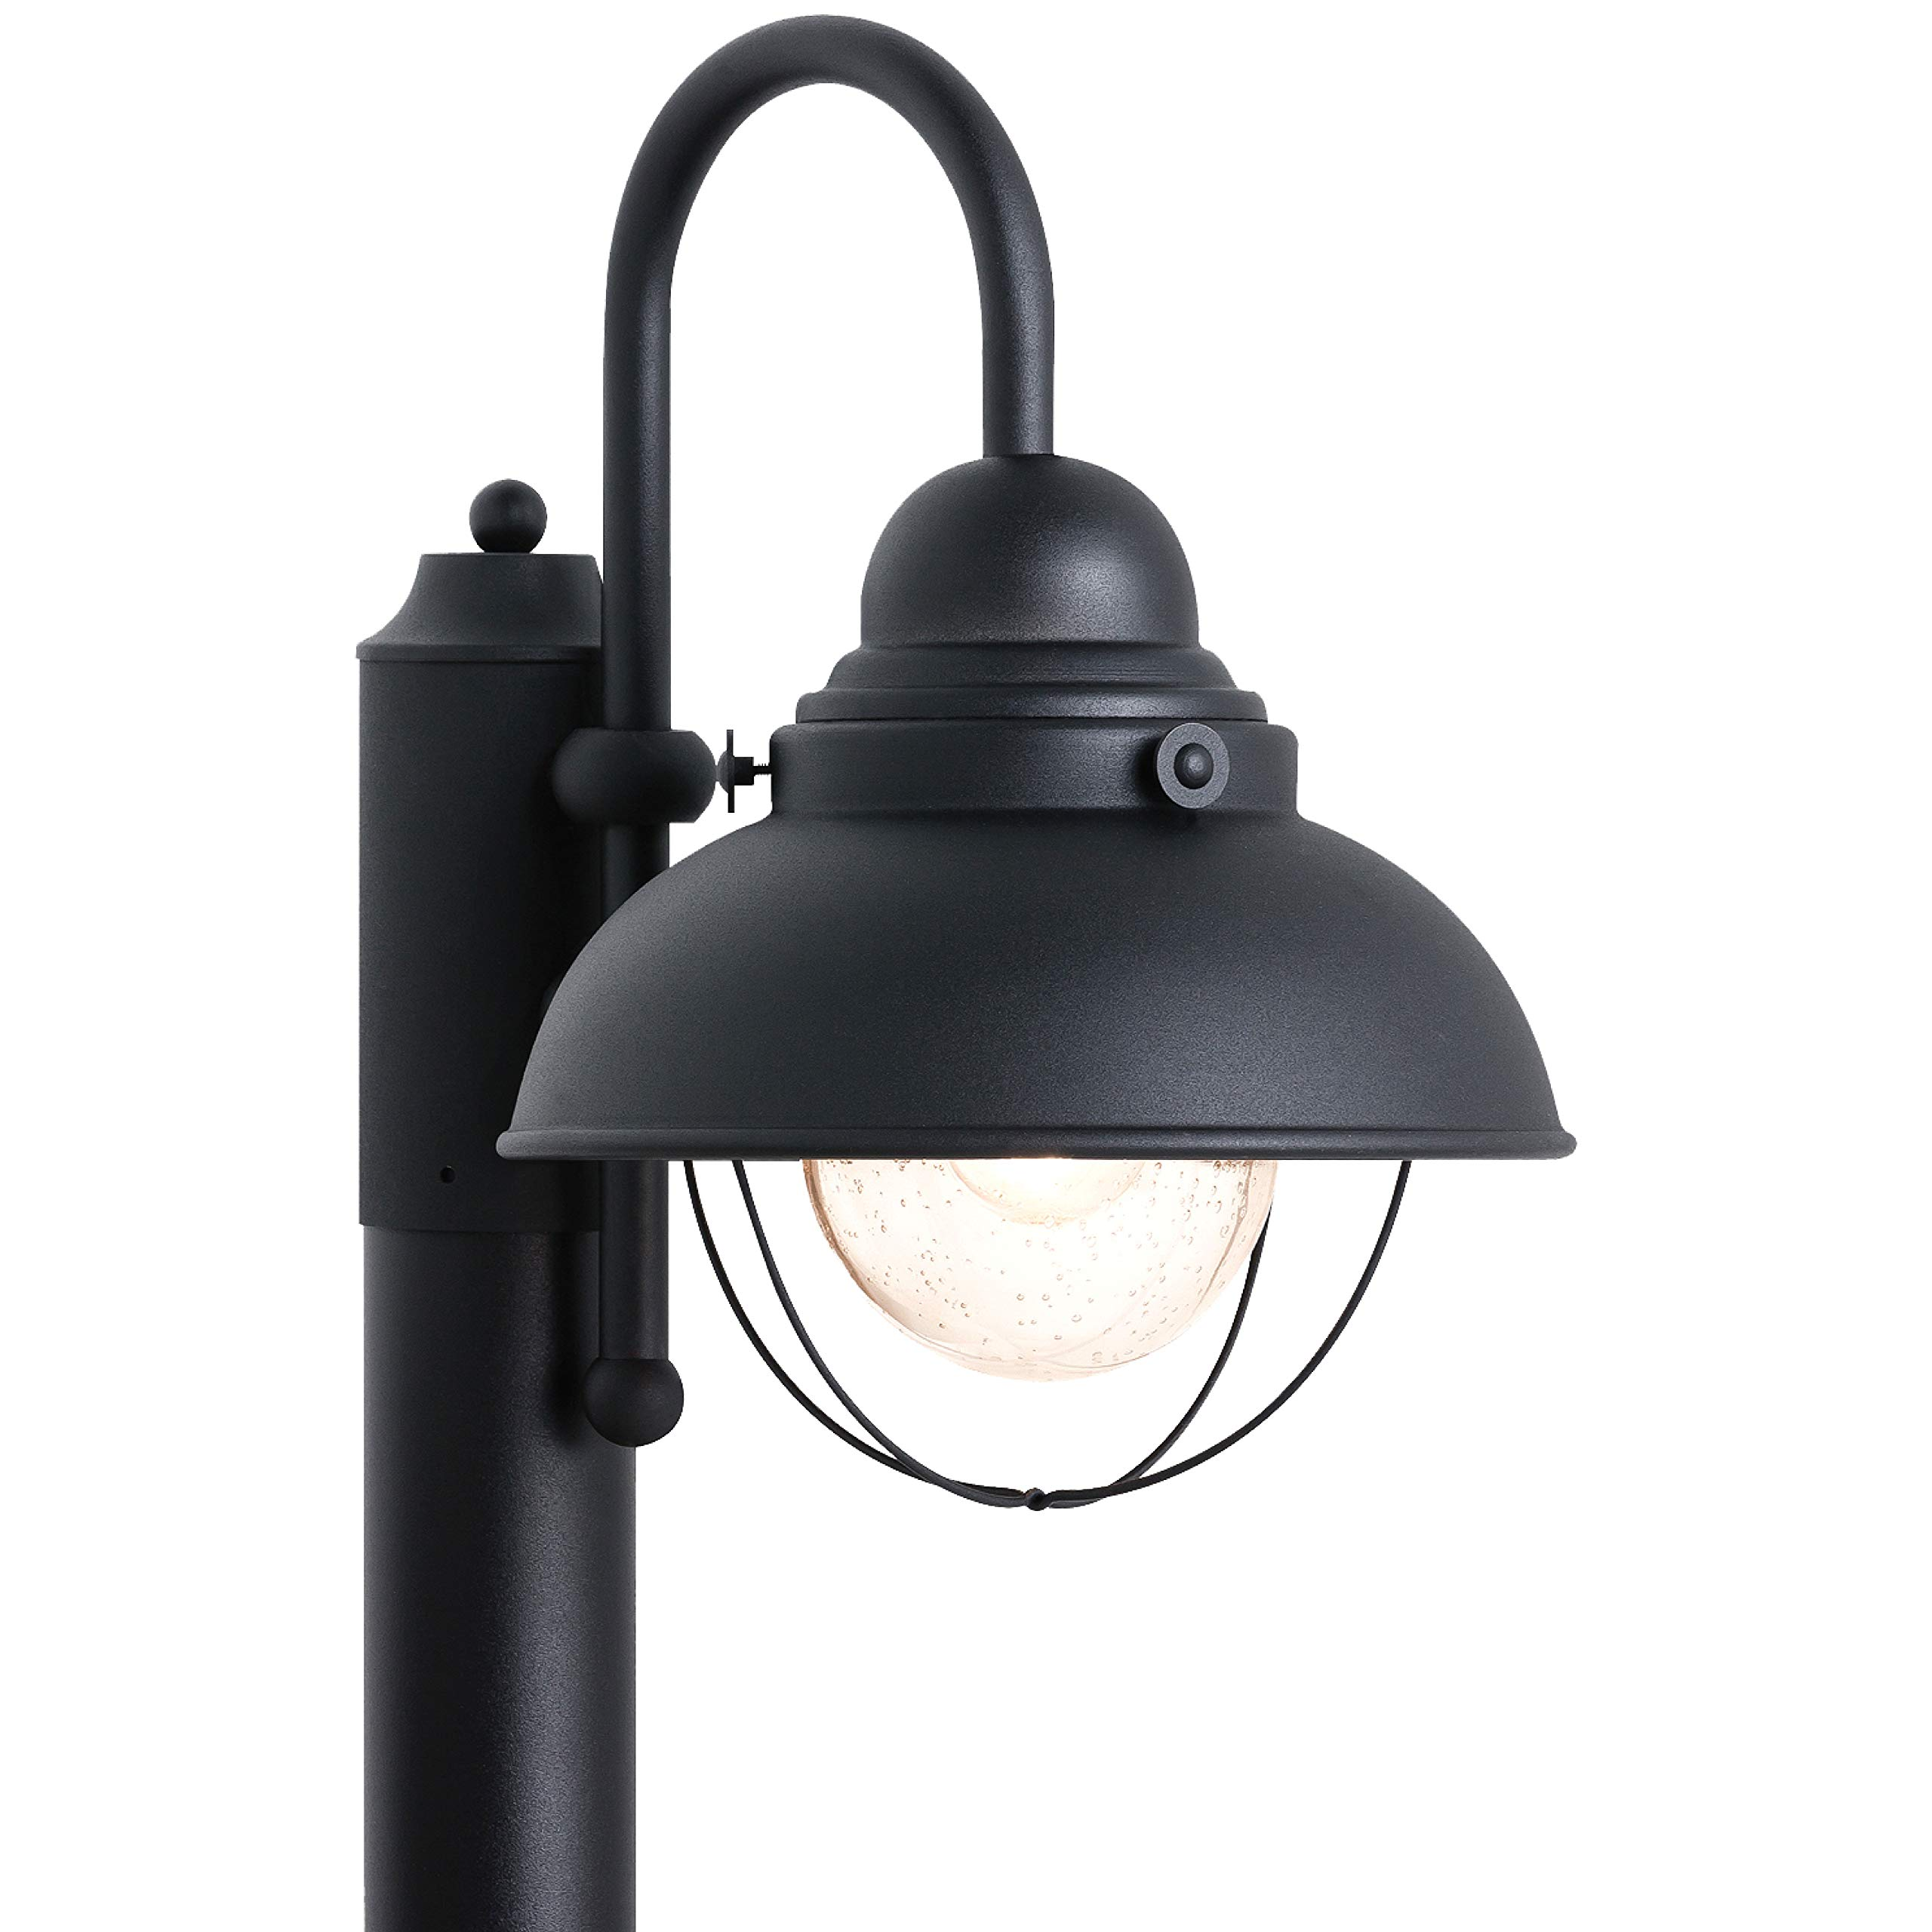 Sea Gull Lighting 8269-12 Sebring One-Light Outdoor Post Lantern Outside Fixture